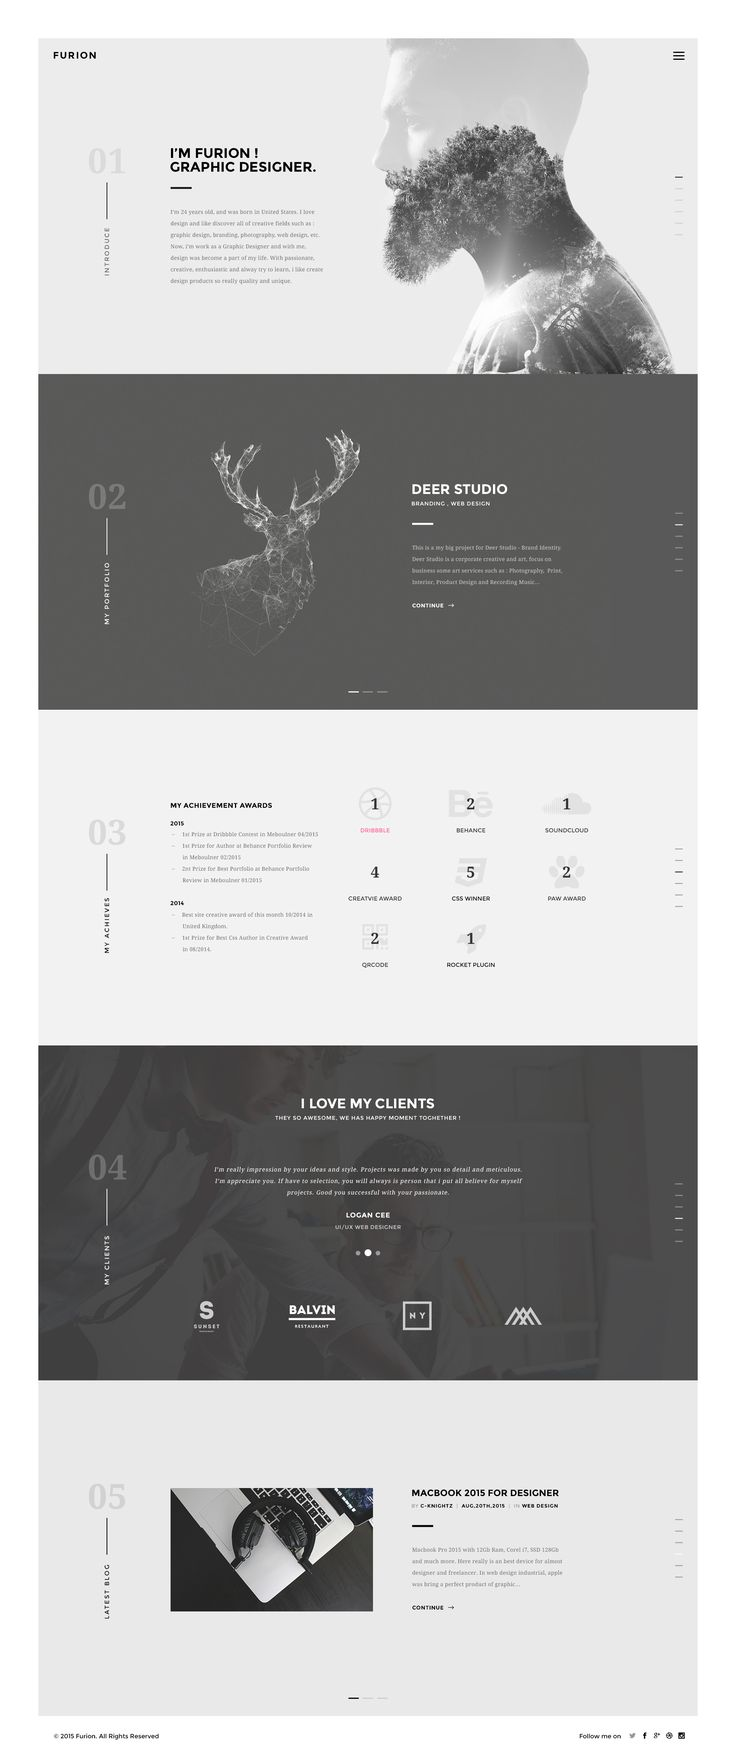 Furion Homepage with awesome double exposure portrait - by C-Knightz Art on Dribbble  Minimalist, yet still conveys meaning efficiently. Grey scale is not boring in this instance due to use of graphics and is suitable for the colour blind.